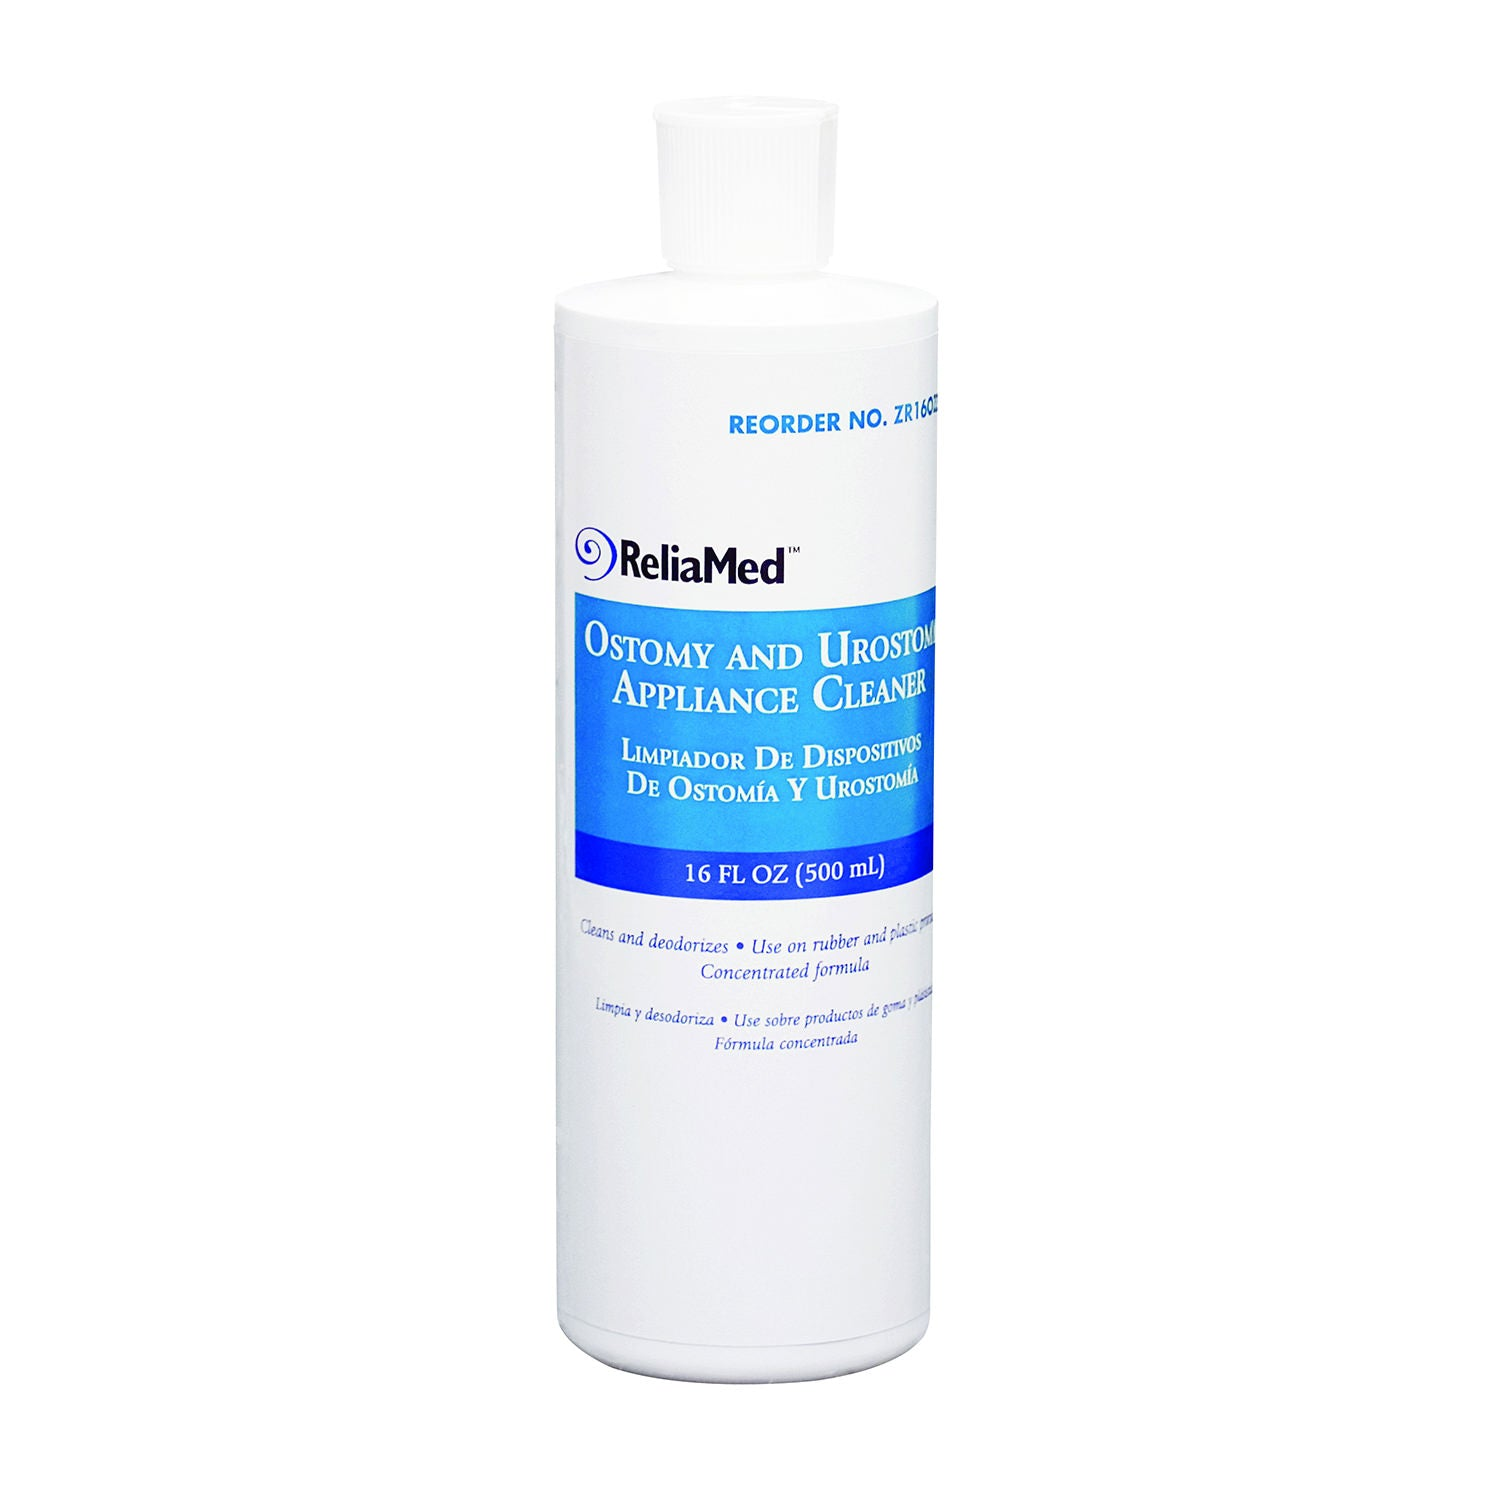 ReliaMed® Ostomy and Urostomy Appliance Cleaner